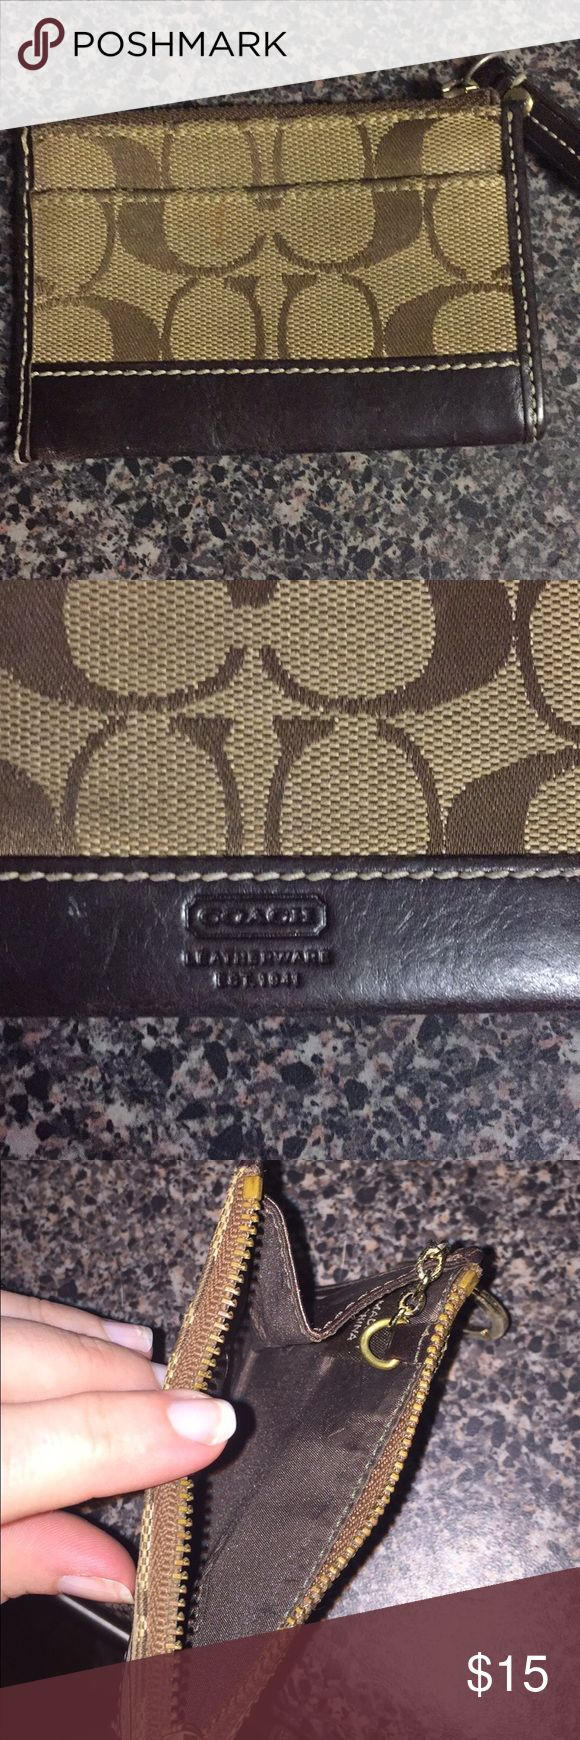 Coach original skinny wallet Coach original print skinny mini. Has a small mark on front (see photo) otherwise in good condition. Coach Bags Clutches & Wristlets